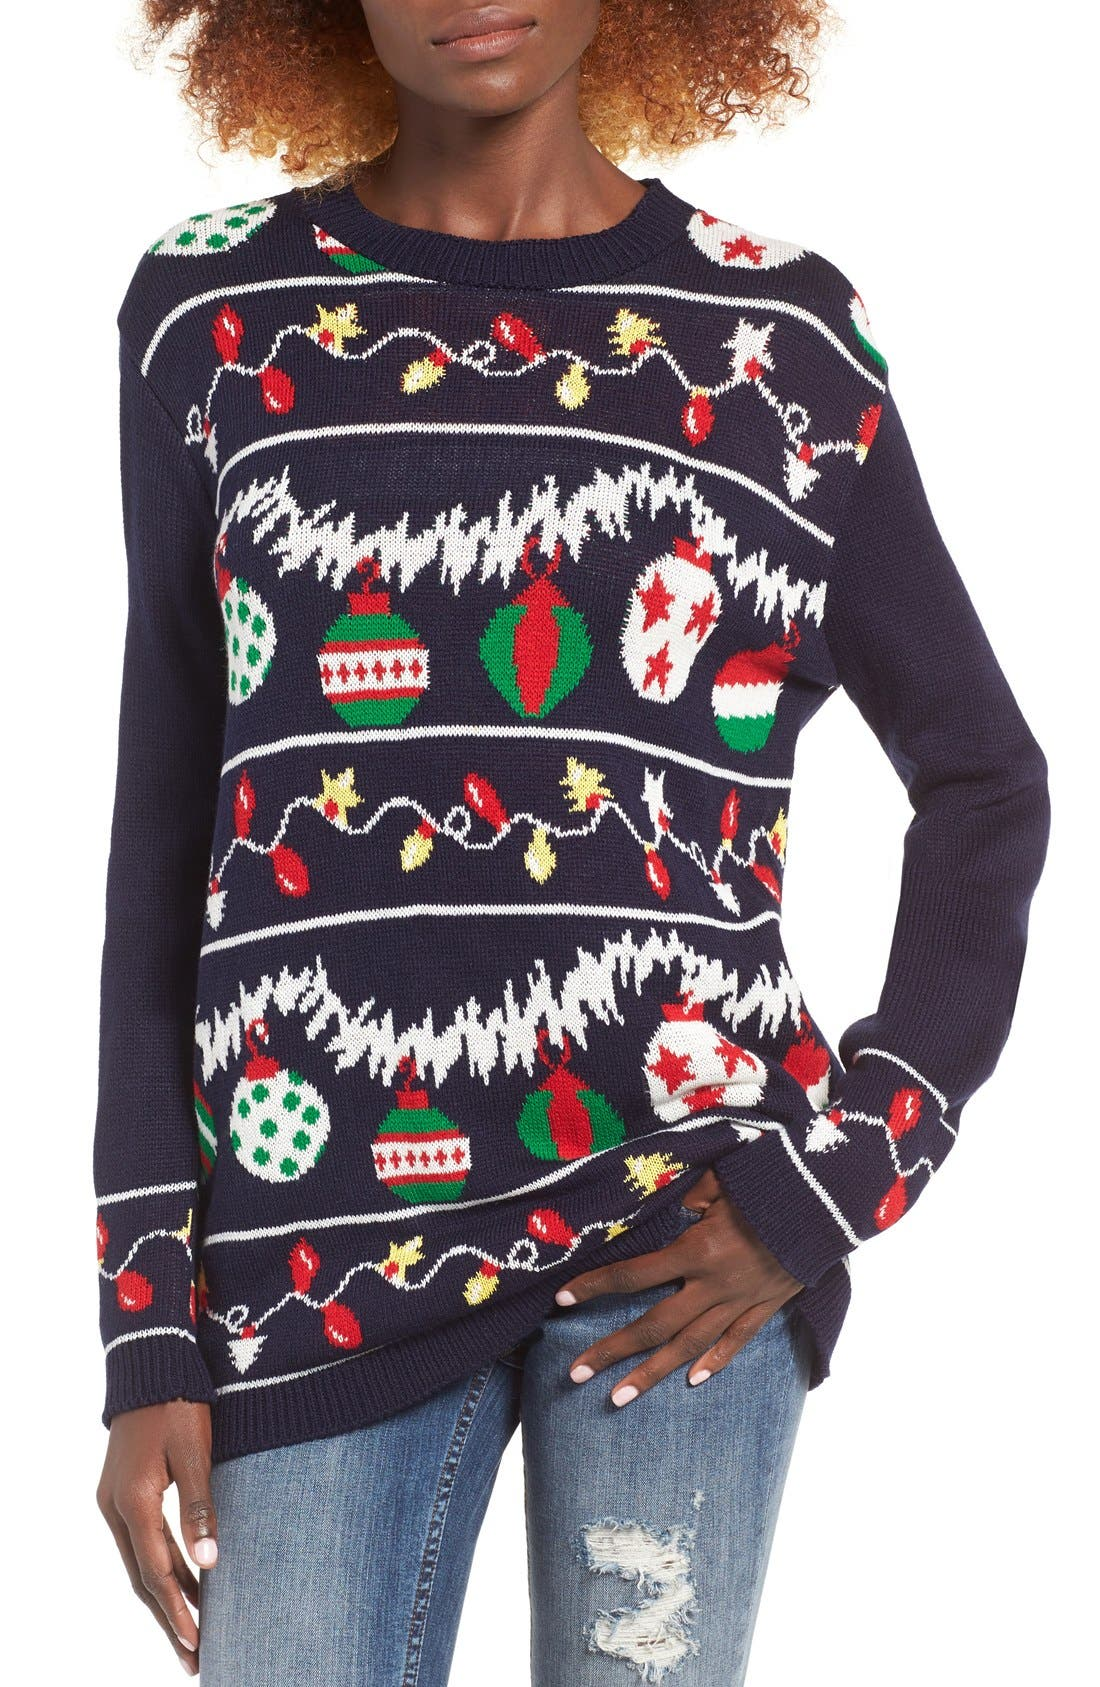 Alternate Image 1 Selected - Cotton Emporium Ornament Christmas Sweater